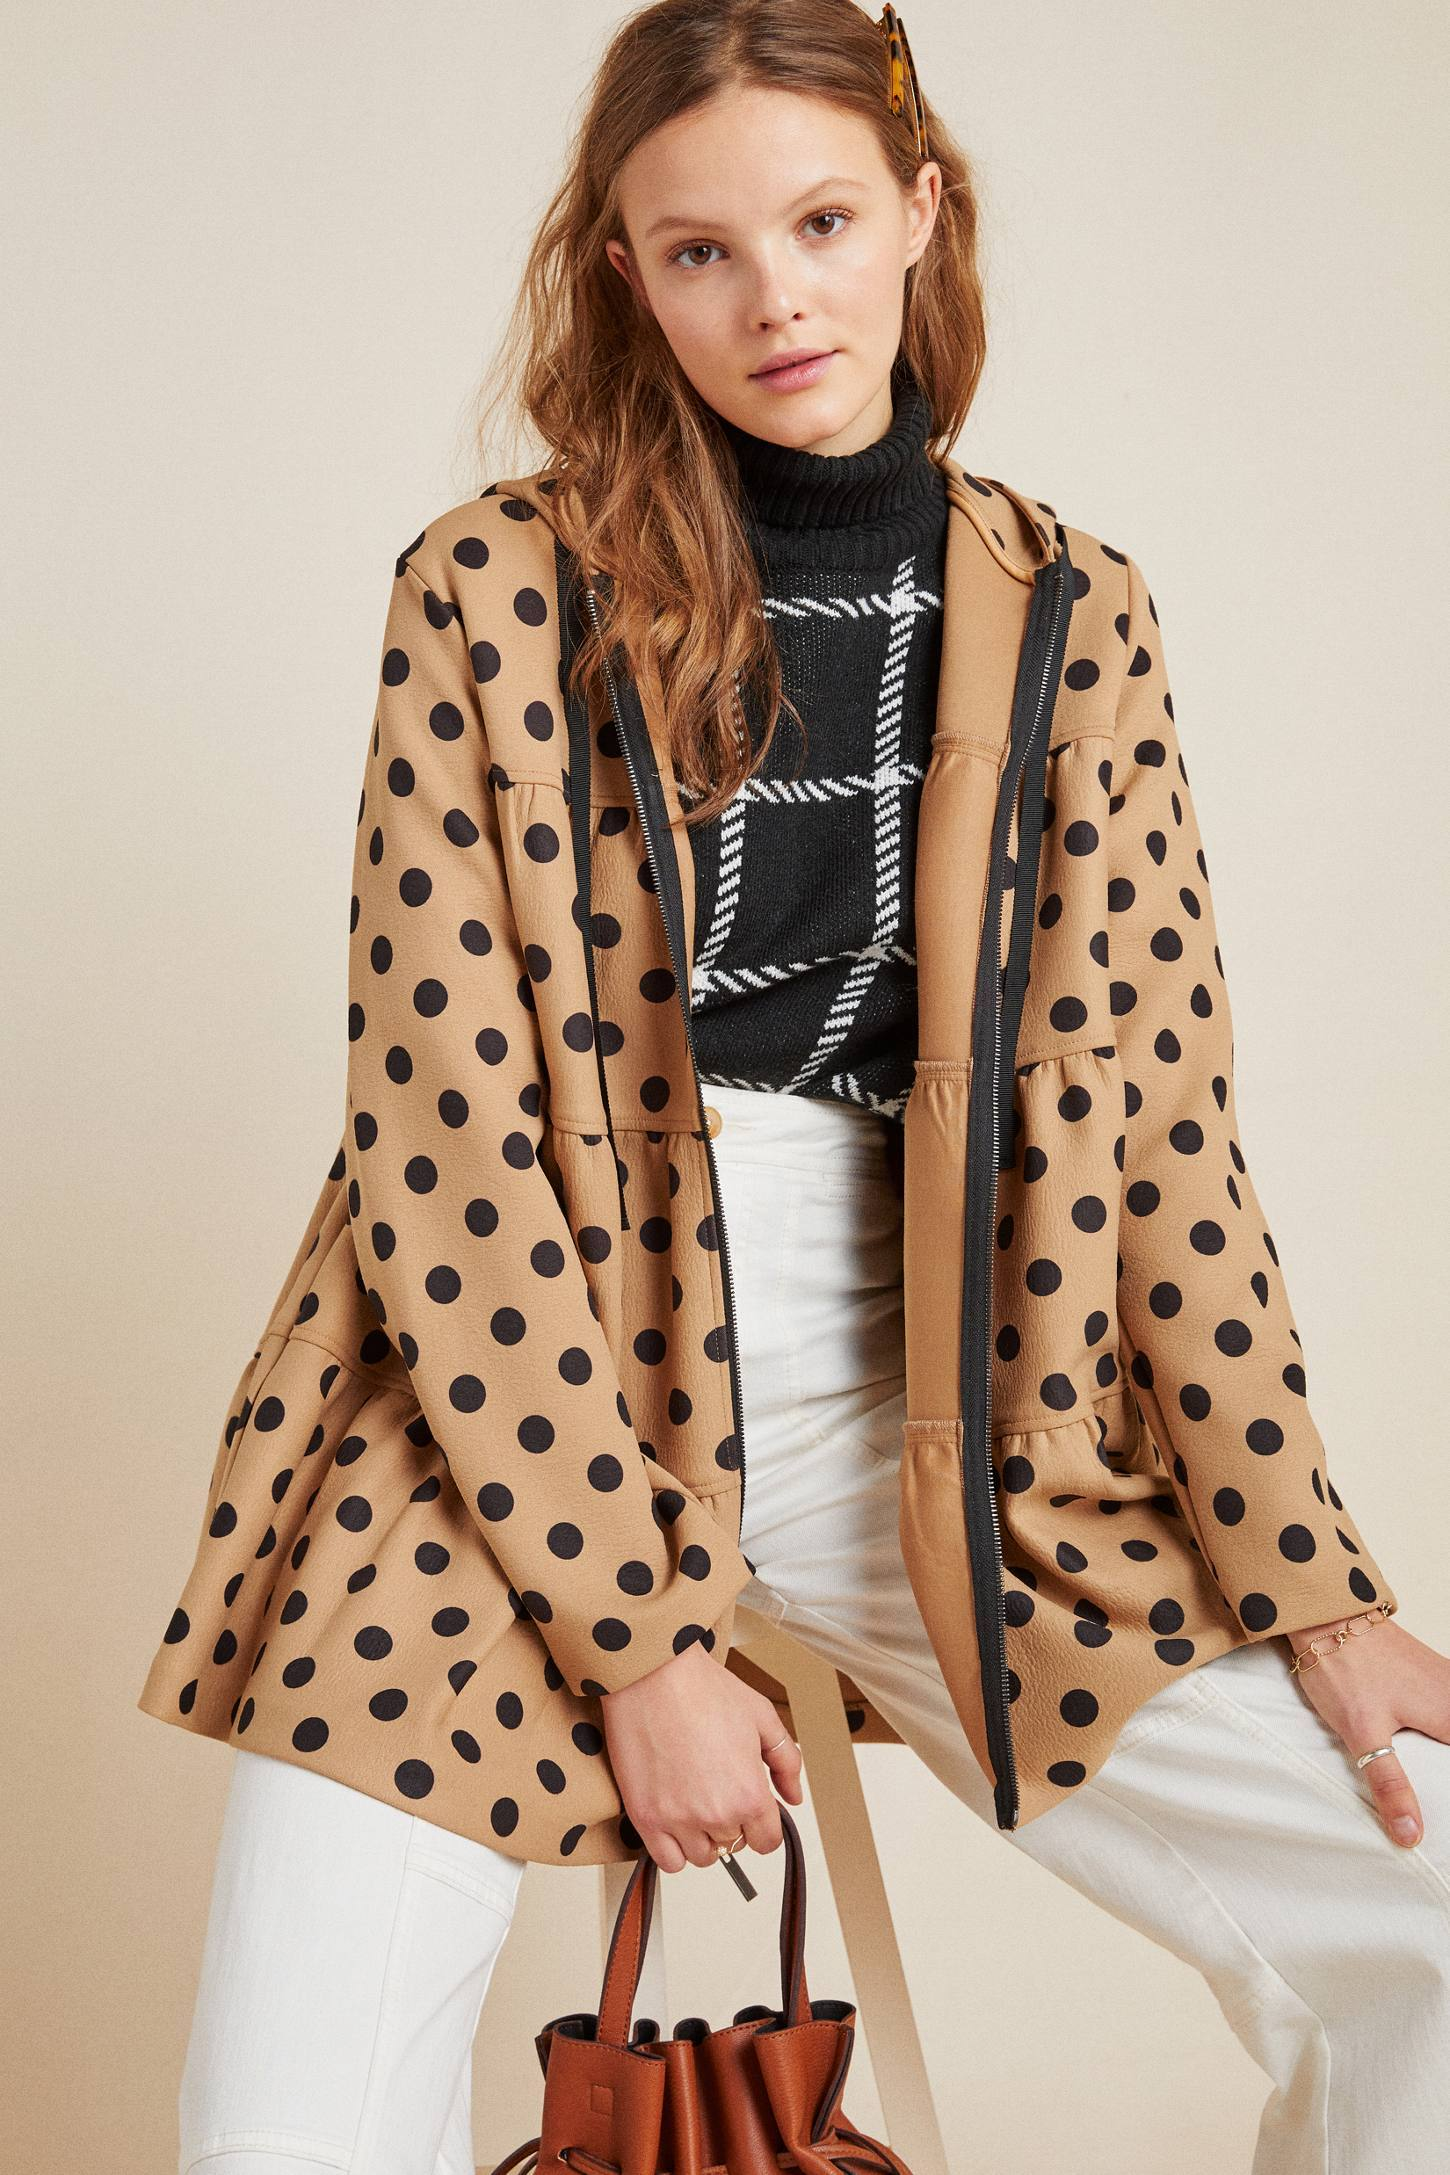 Eva Franco Coat Maybelle Polka Dot Tiered Coat